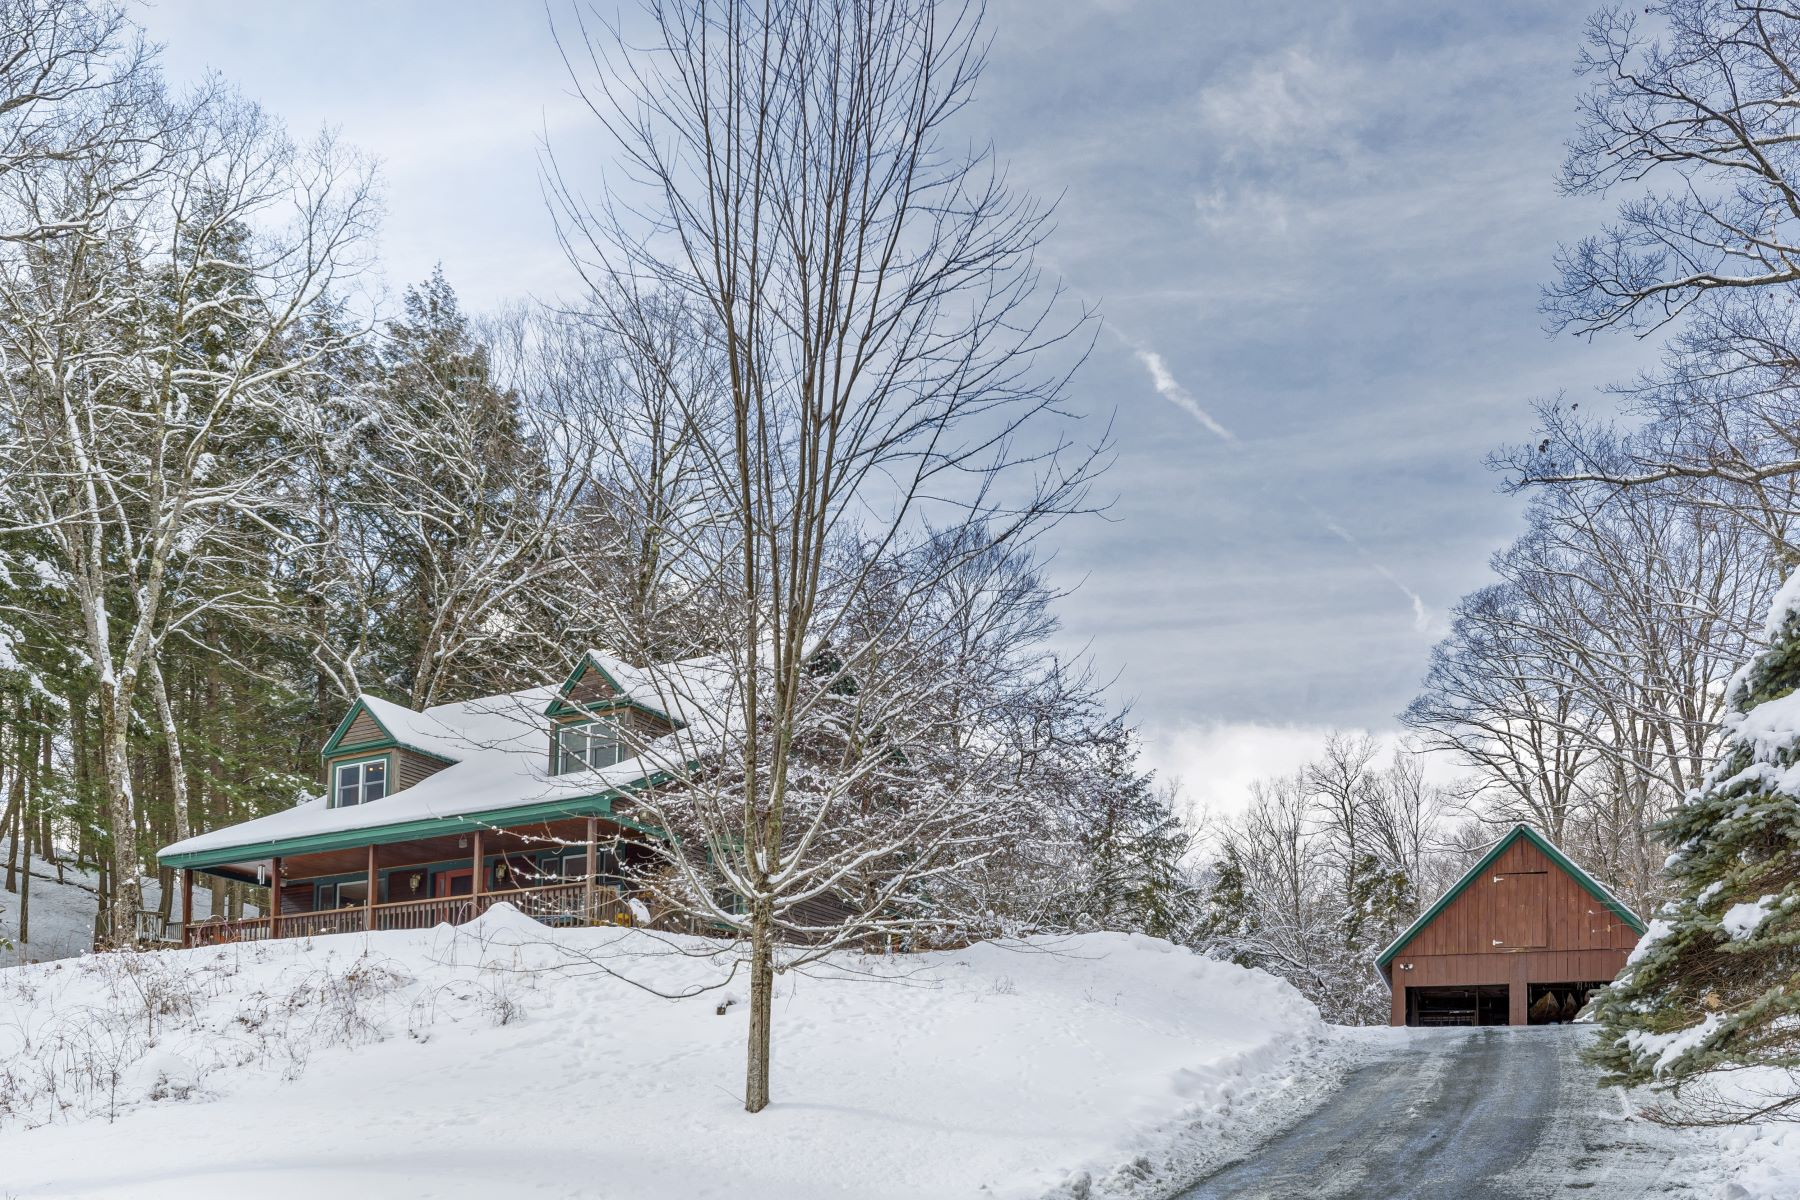 Single Family Homes for Sale at 163 Reb Mountain Drive, Thetford 163 Reb Mountain Dr Thetford, Vermont 05075 United States